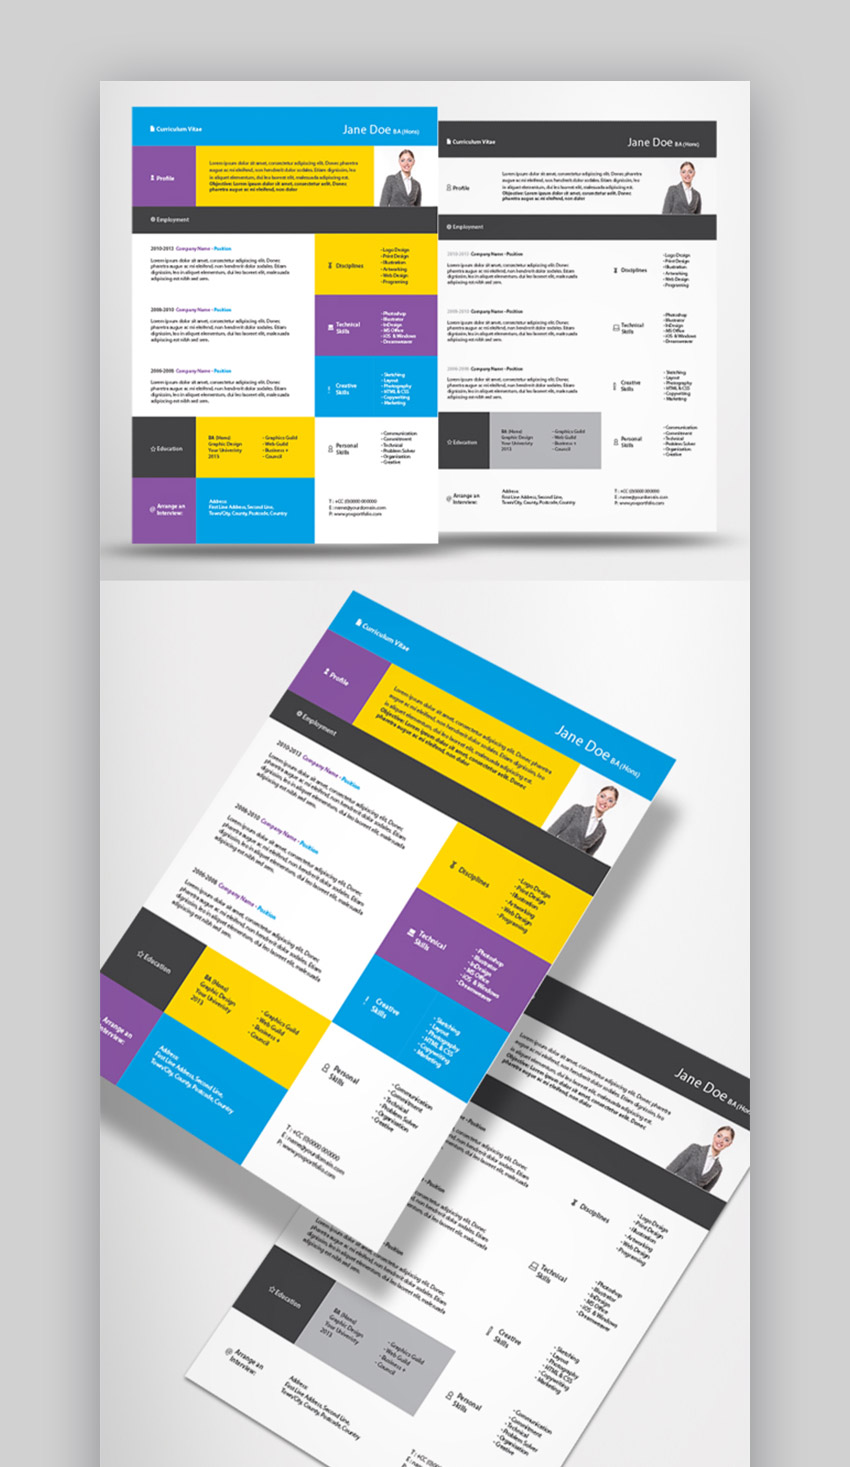 19 Best Web & Graphic Designer Resume Templates for 2019